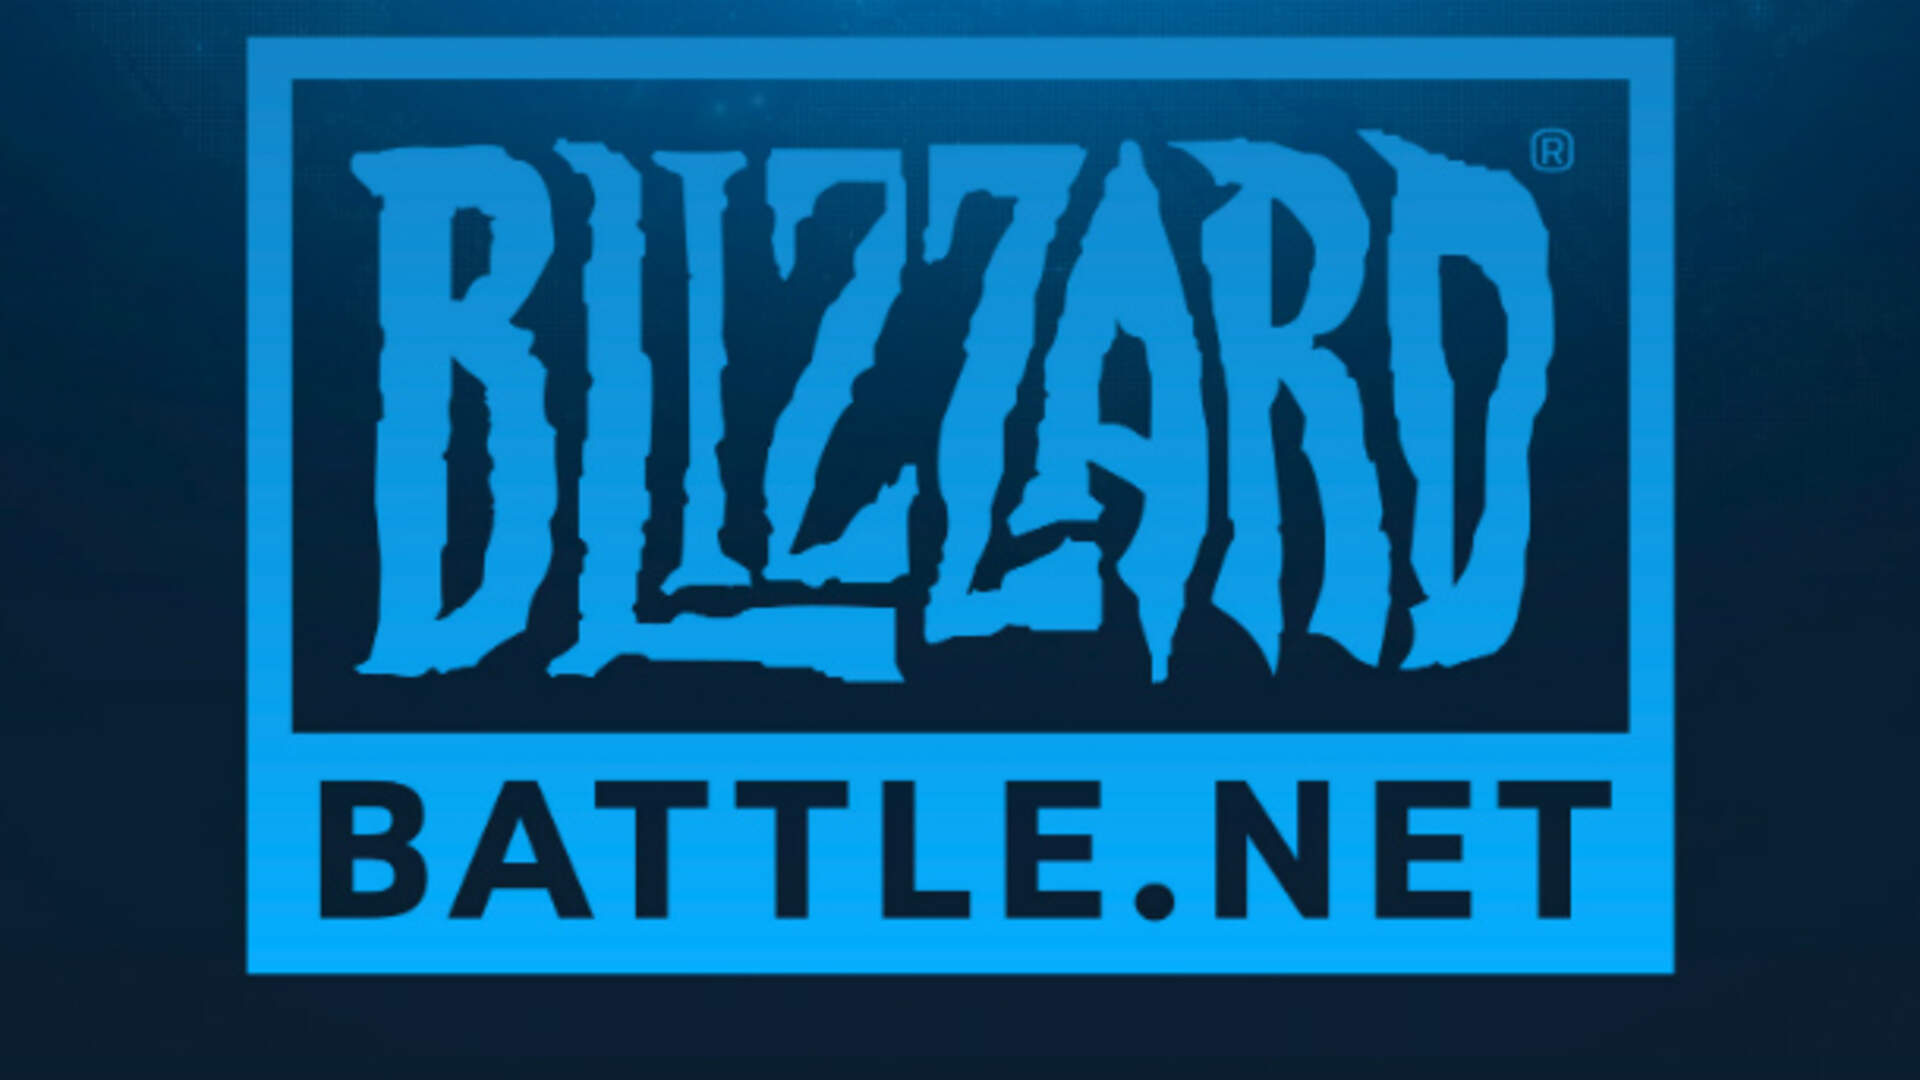 Battle.net Gets Some New Social Features Like Voice Chat and Social Channels